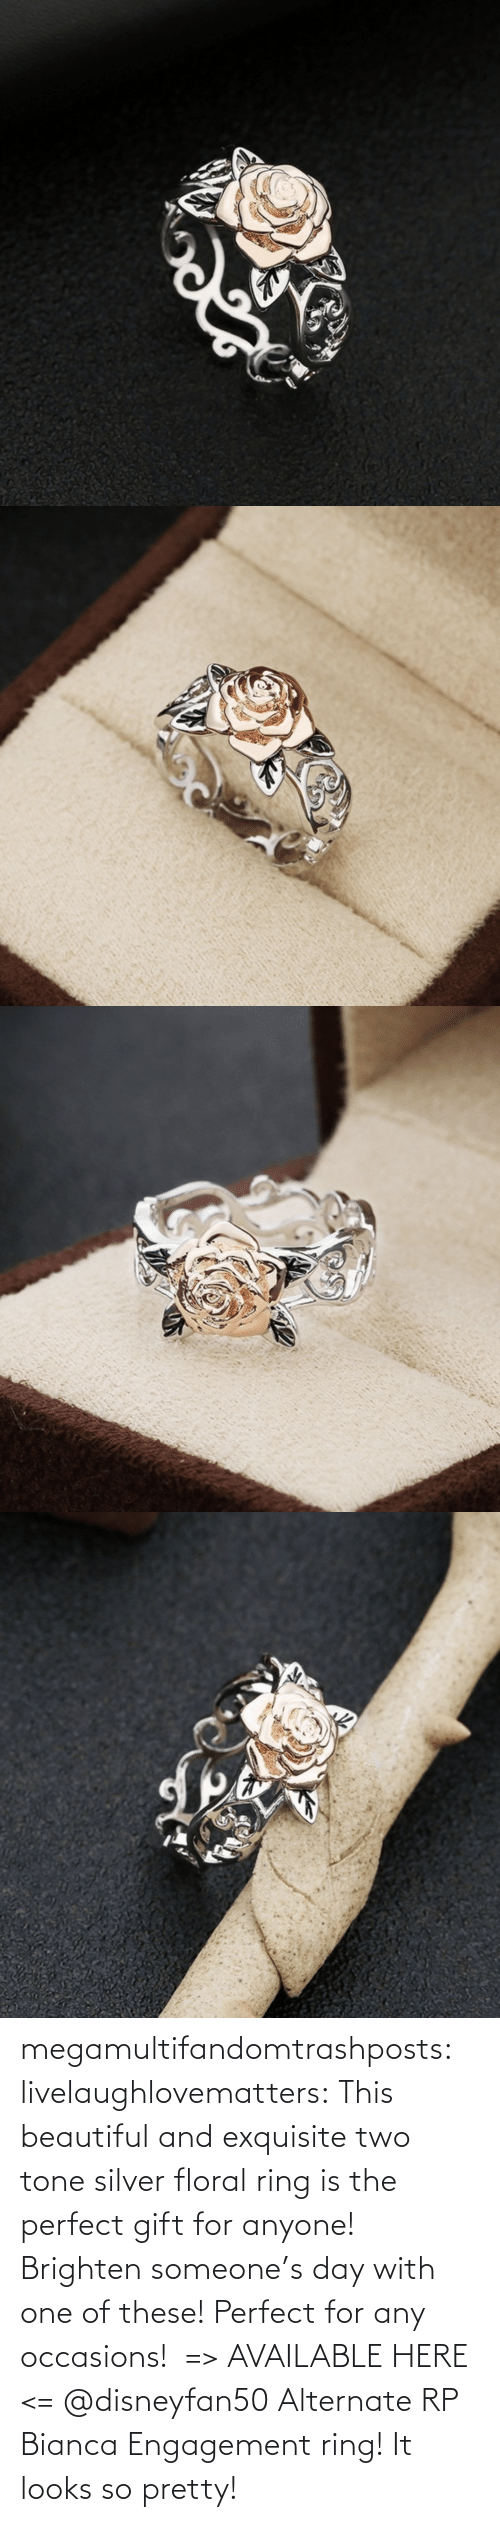 Here: megamultifandomtrashposts:  livelaughlovematters: This beautiful and exquisite two tone silver floral ring is the perfect gift for anyone! Brighten someone's day with one of these! Perfect for any occasions!  => AVAILABLE HERE <=    @disneyfan50 Alternate RP Bianca Engagement ring! It looks so pretty!